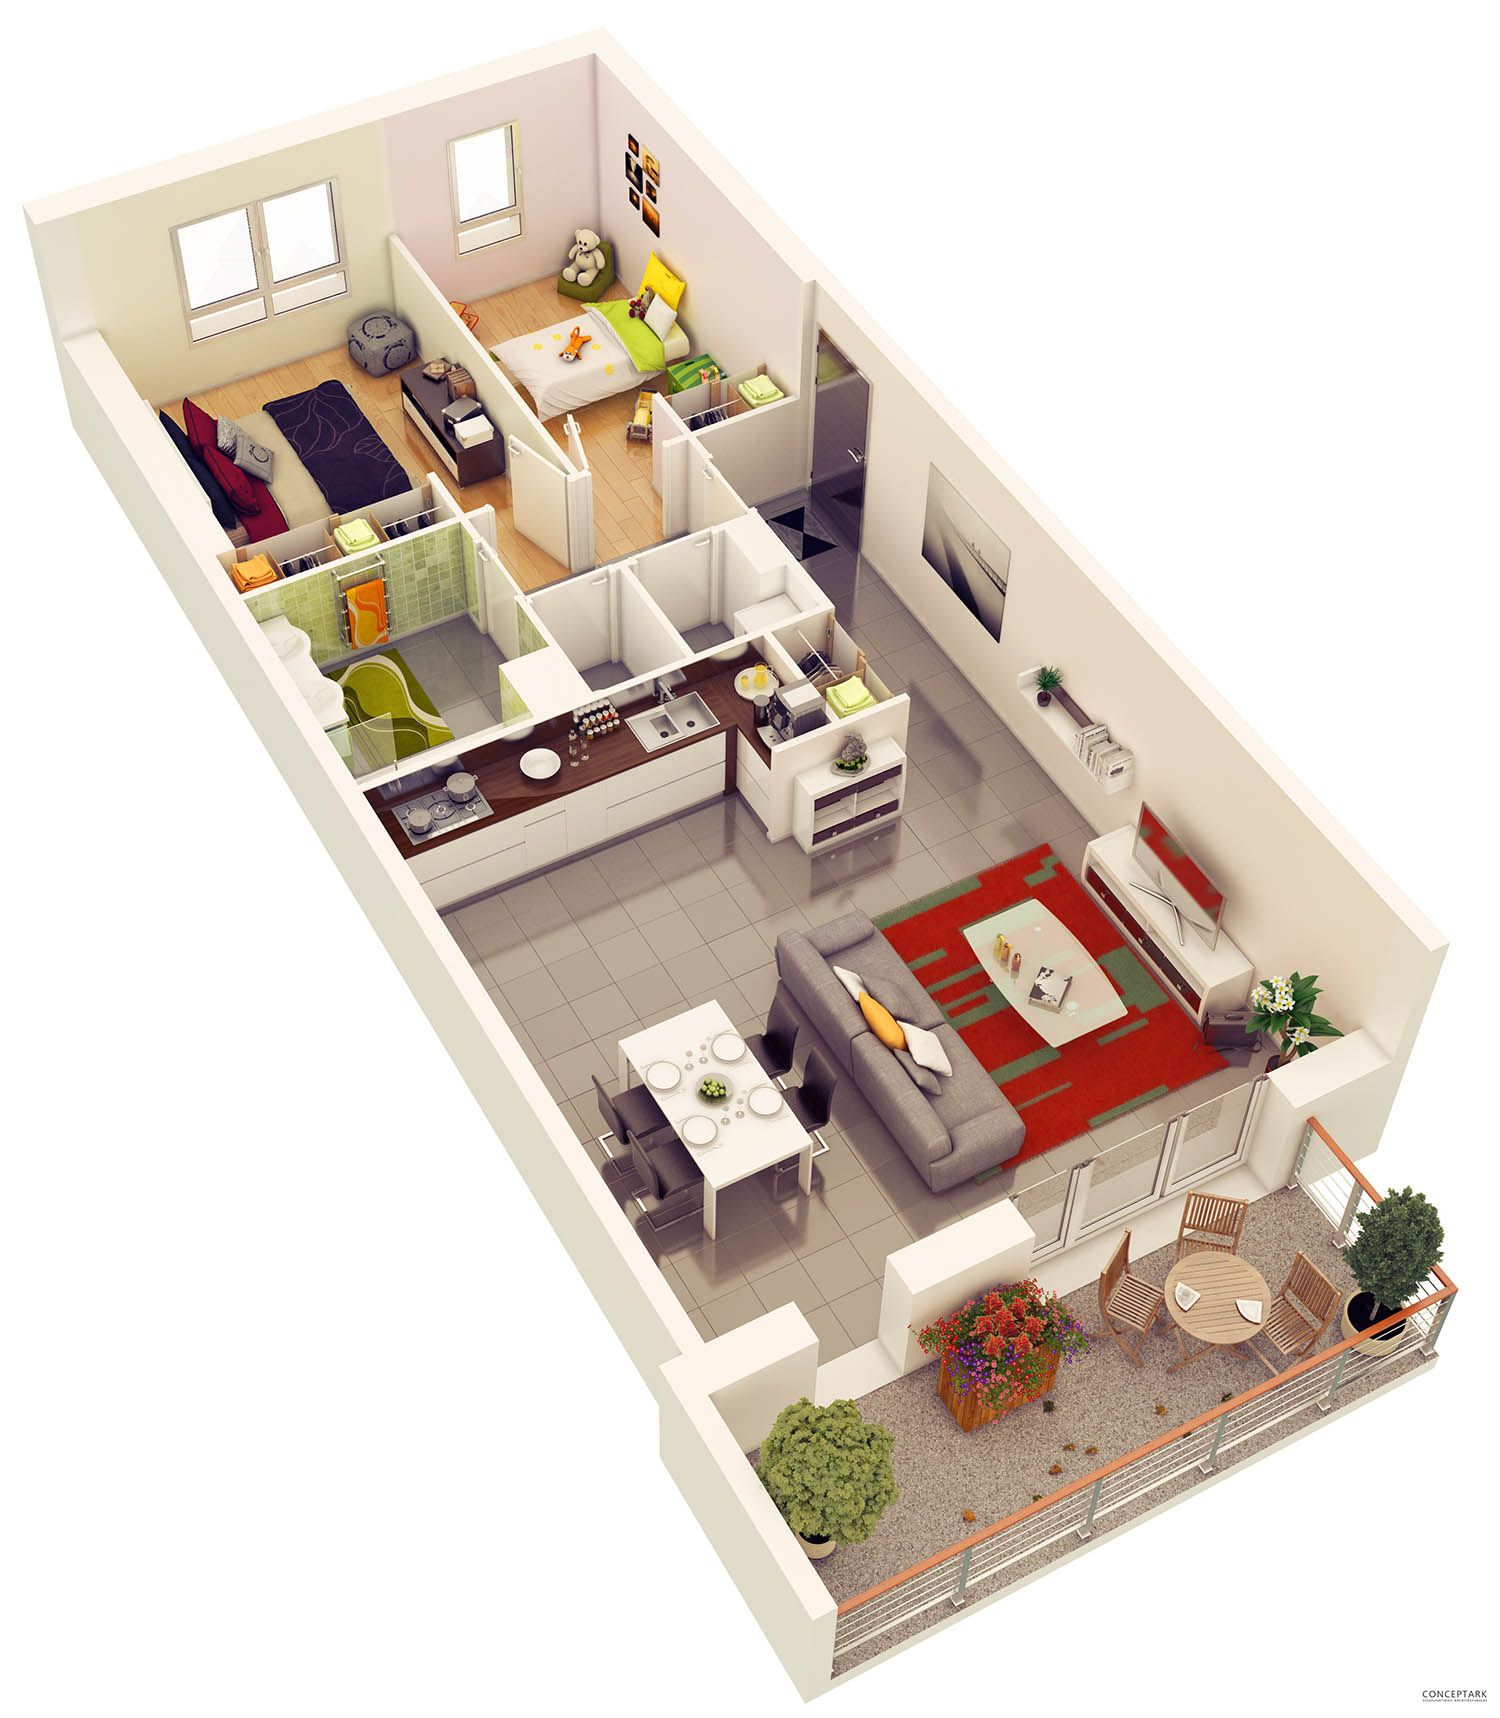 25 More 2 Bedroom 3D Floor Plans Planimetrie di case